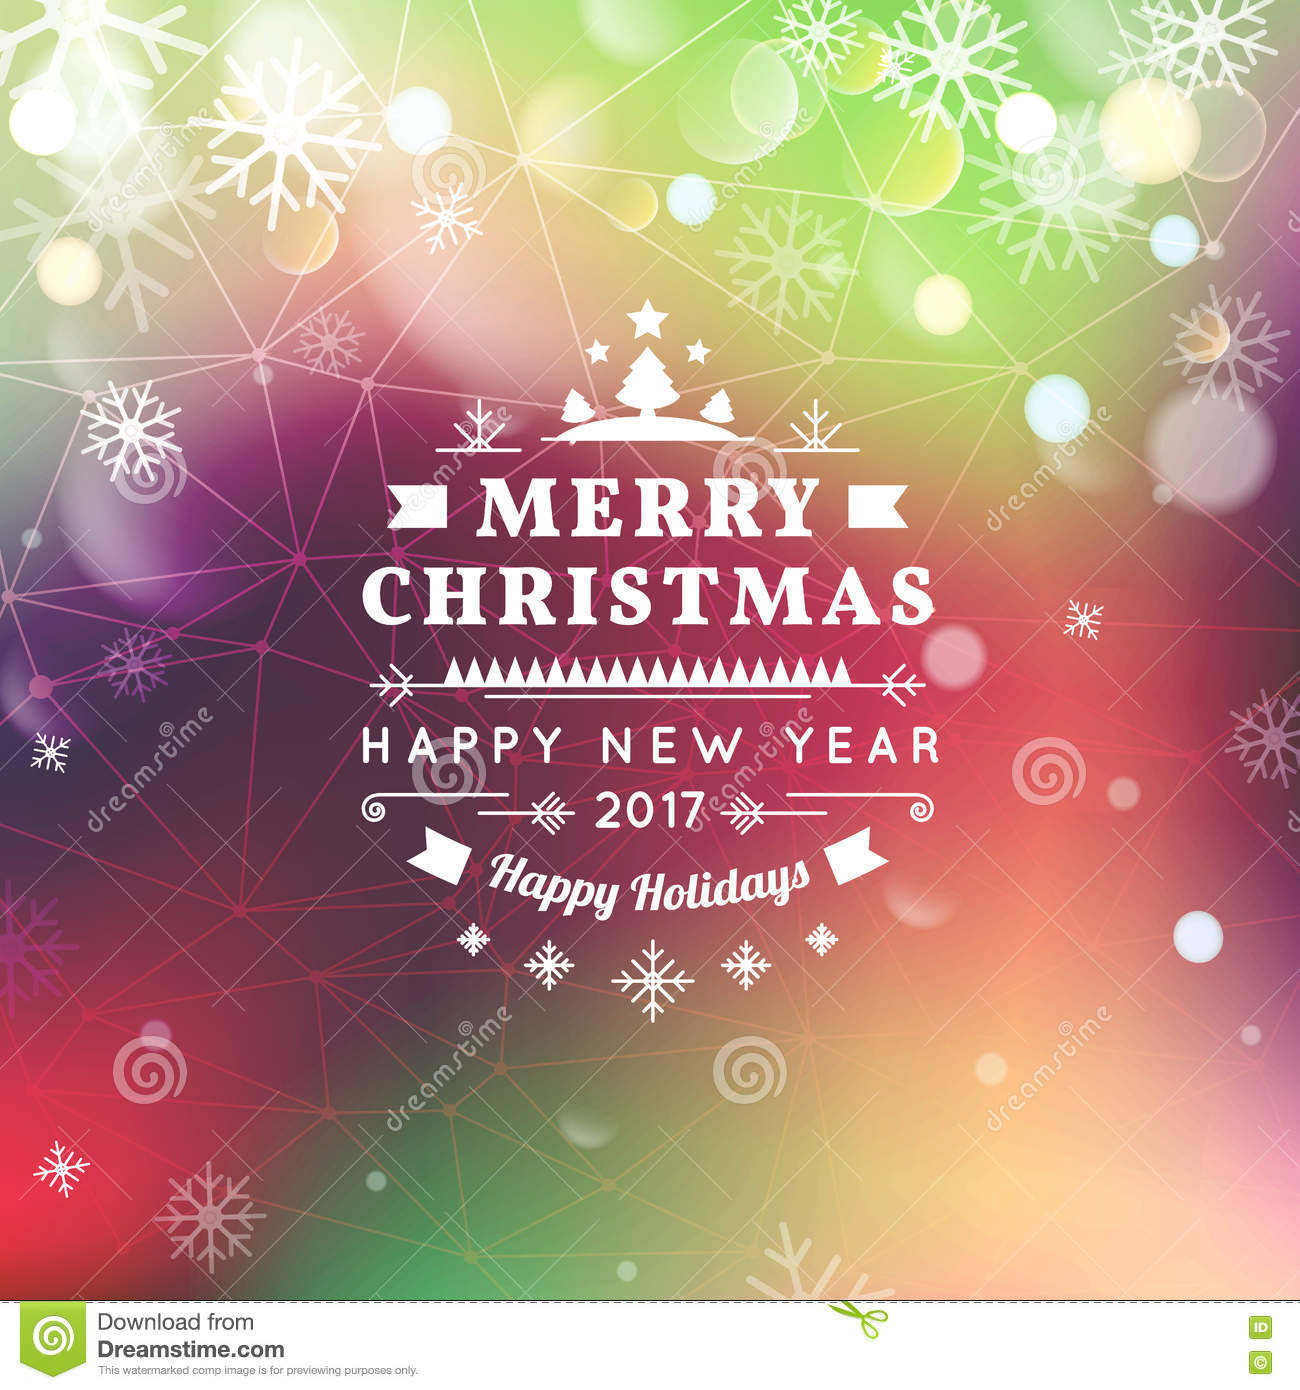 Merry Christmas And Happy New Year Card. Christmas Typographic ...